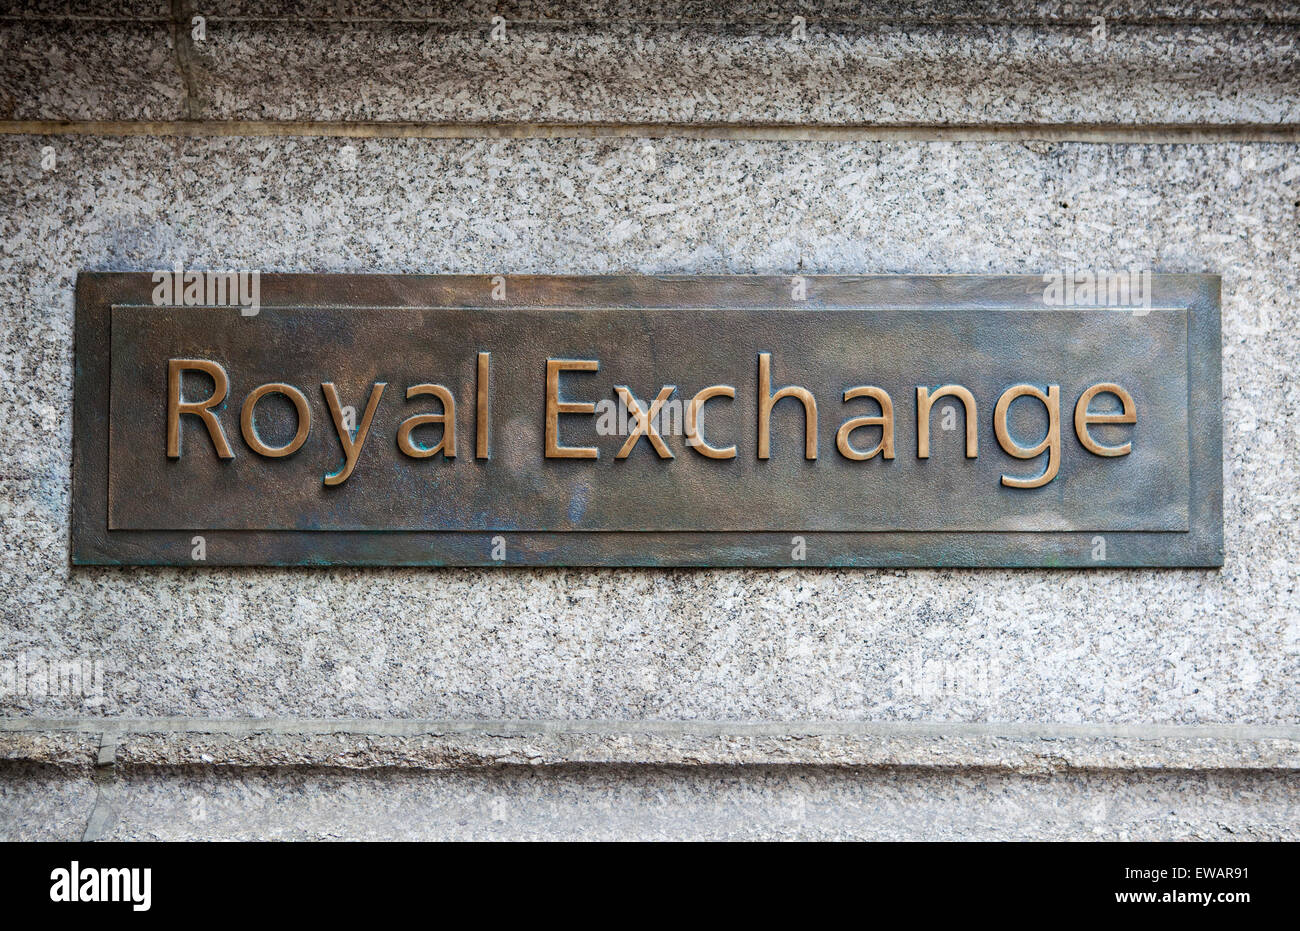 A plaque on the exterior of the Royal Exchange in the City of London. - Stock Image